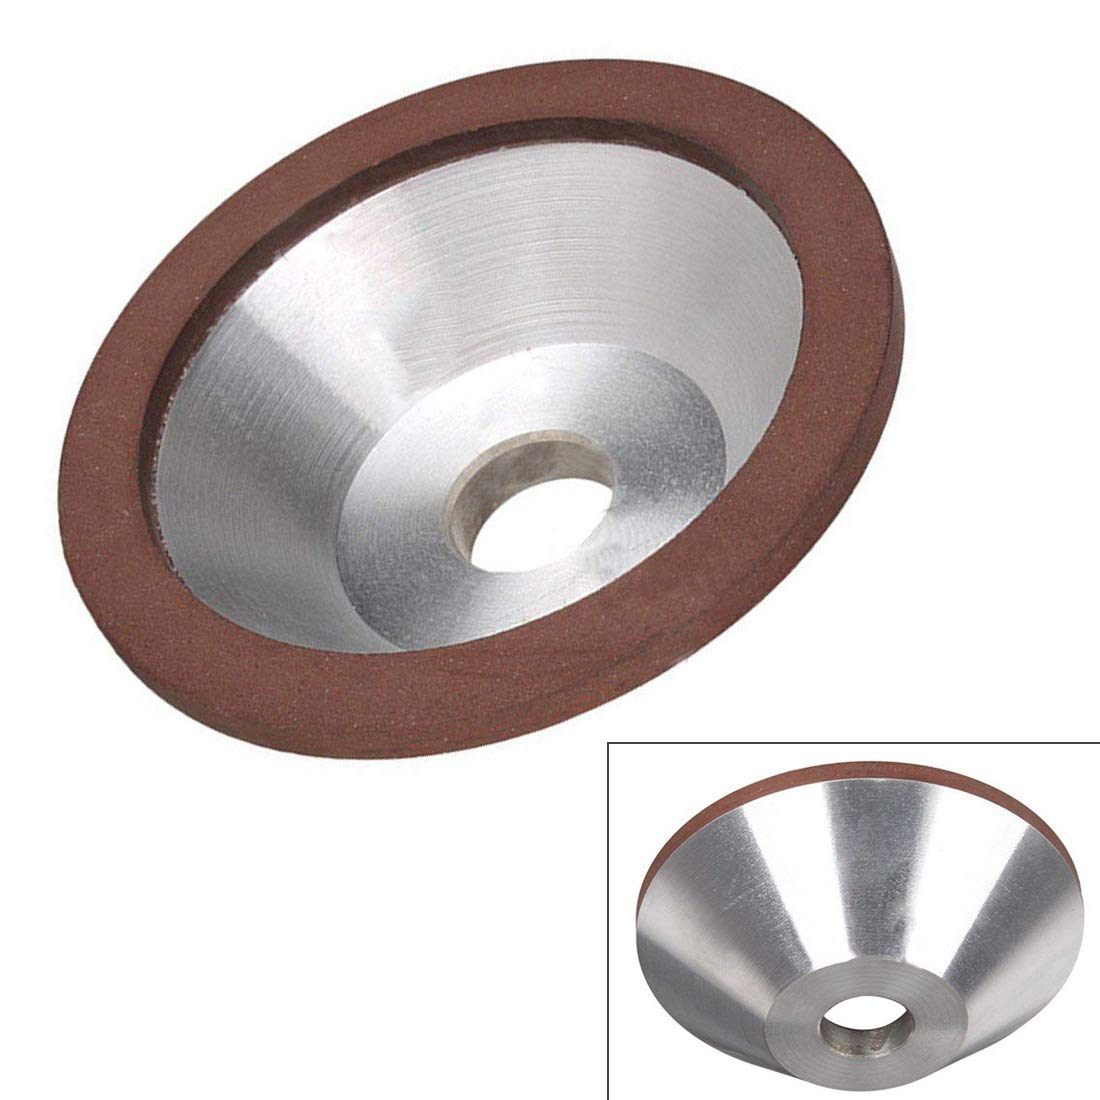 ZXHAO 100x32x20x10x3 Cup Diamond Grinding Wheel for Alloy Blade Tungsten by ZXHAO